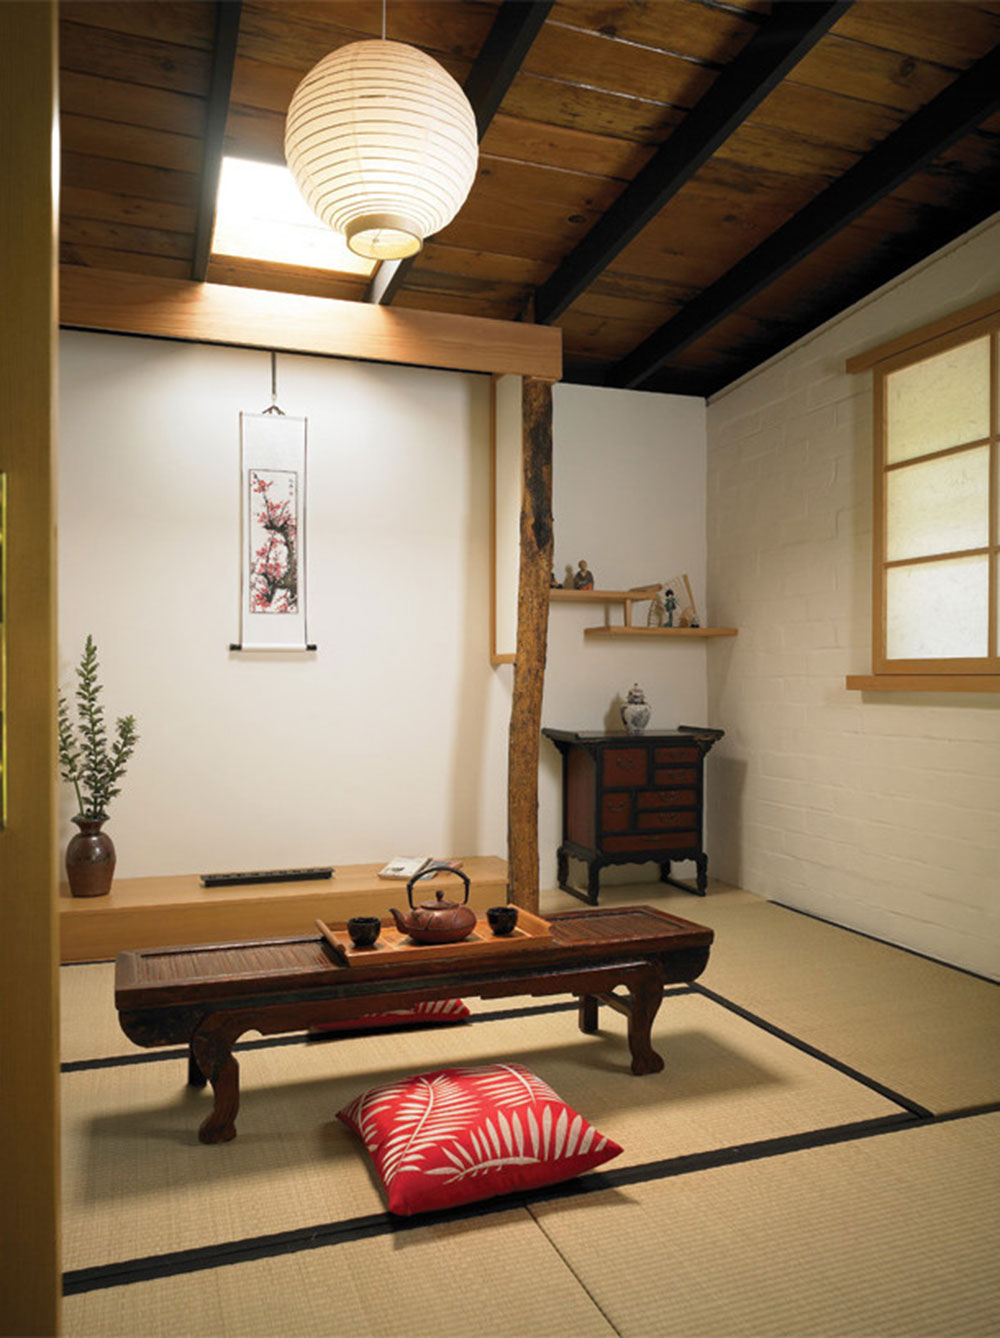 Meditation-Room-Ideas7 Meditation Room Ideas